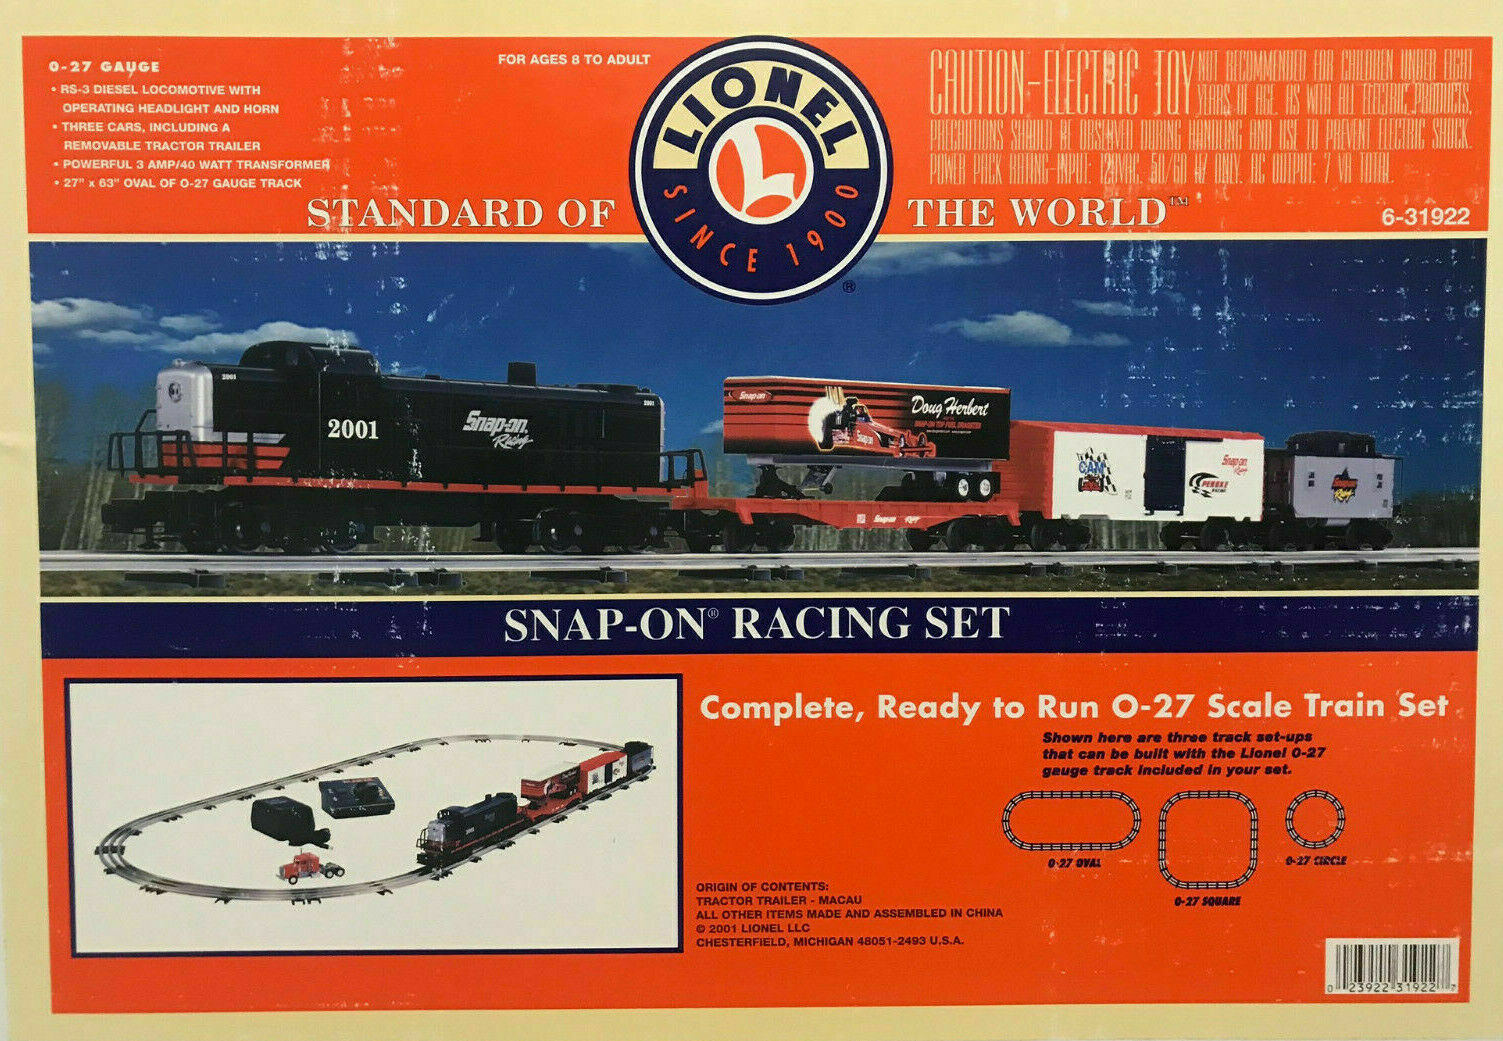 Snap on RACING LIONEL TRENO ELETTRICO SCALA 027 Set con Extra autotellone & AUTO 2001